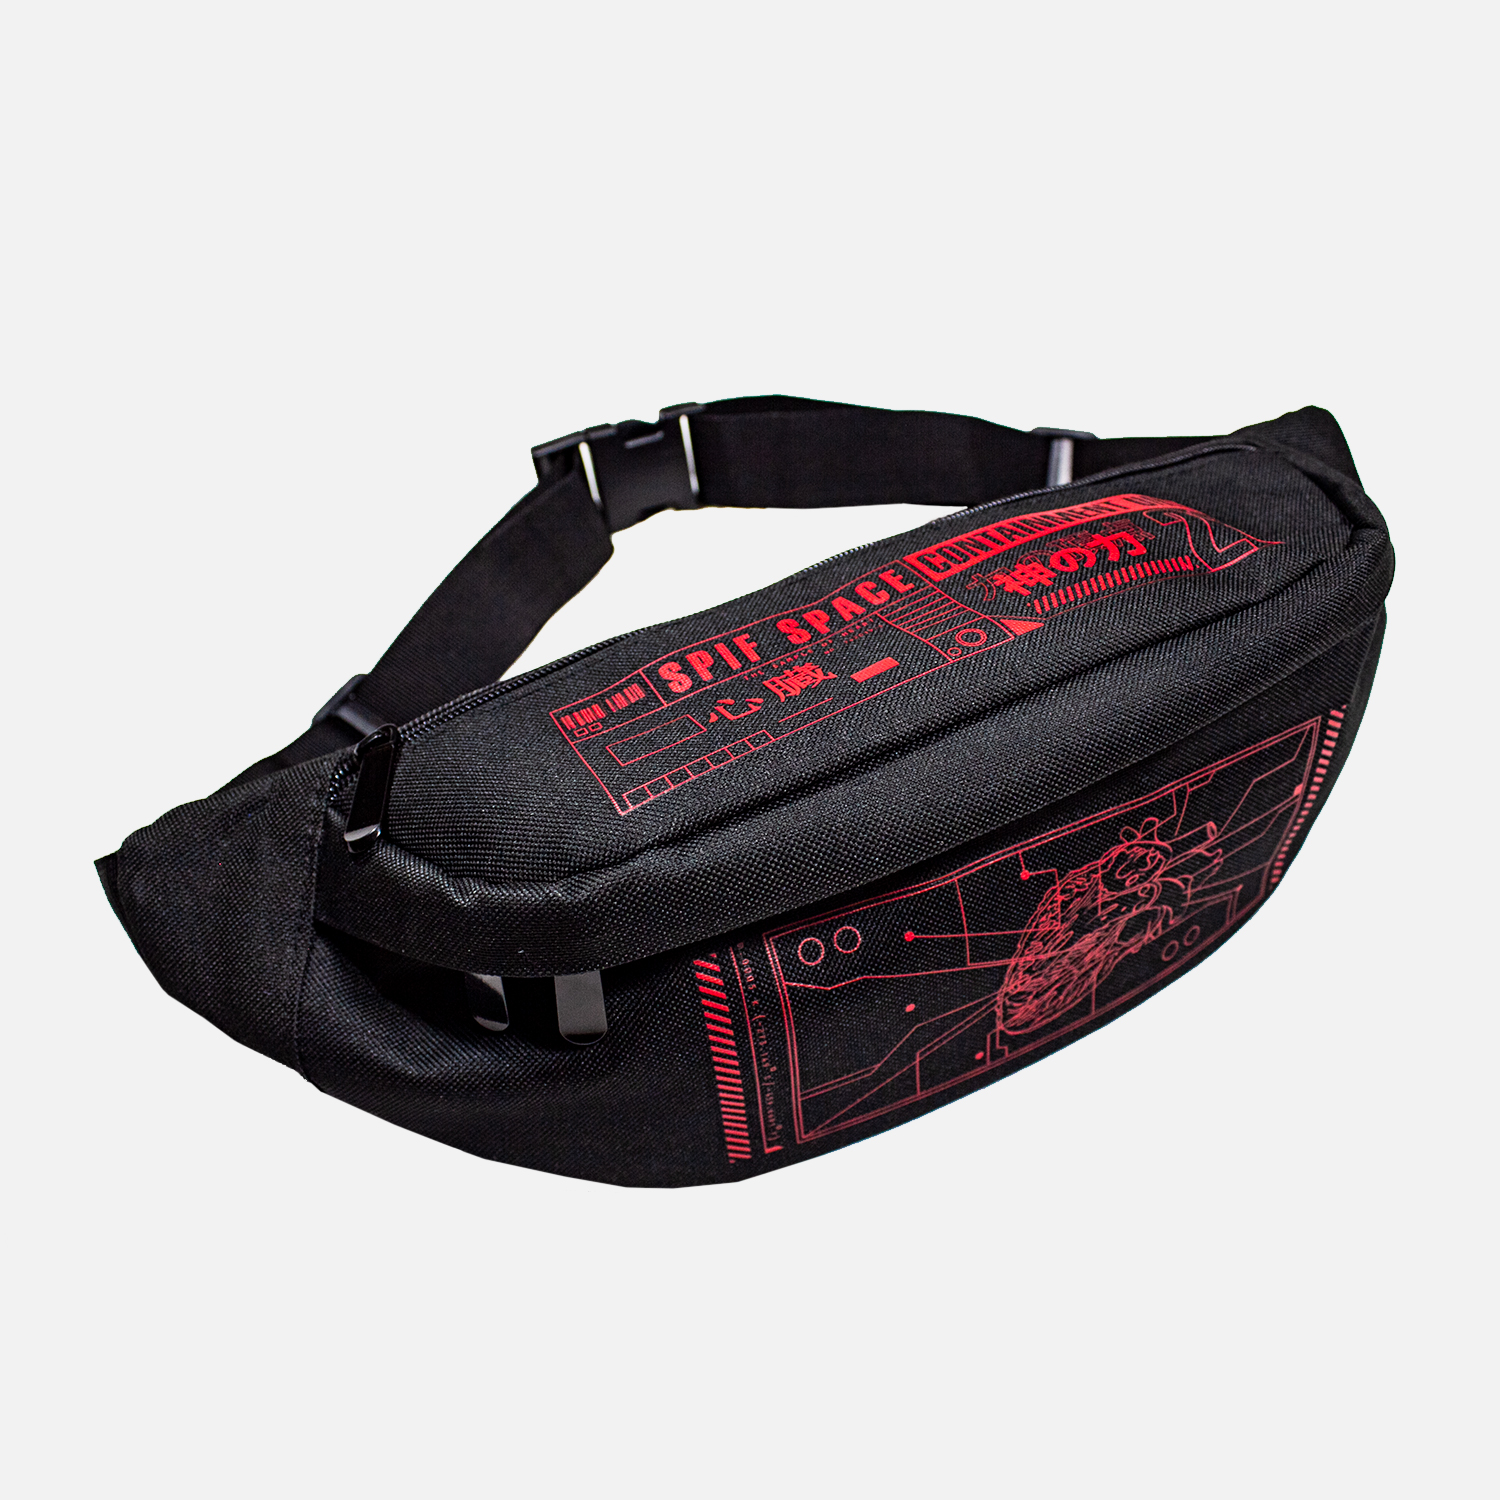 SLEEPING GOD SLING BAG